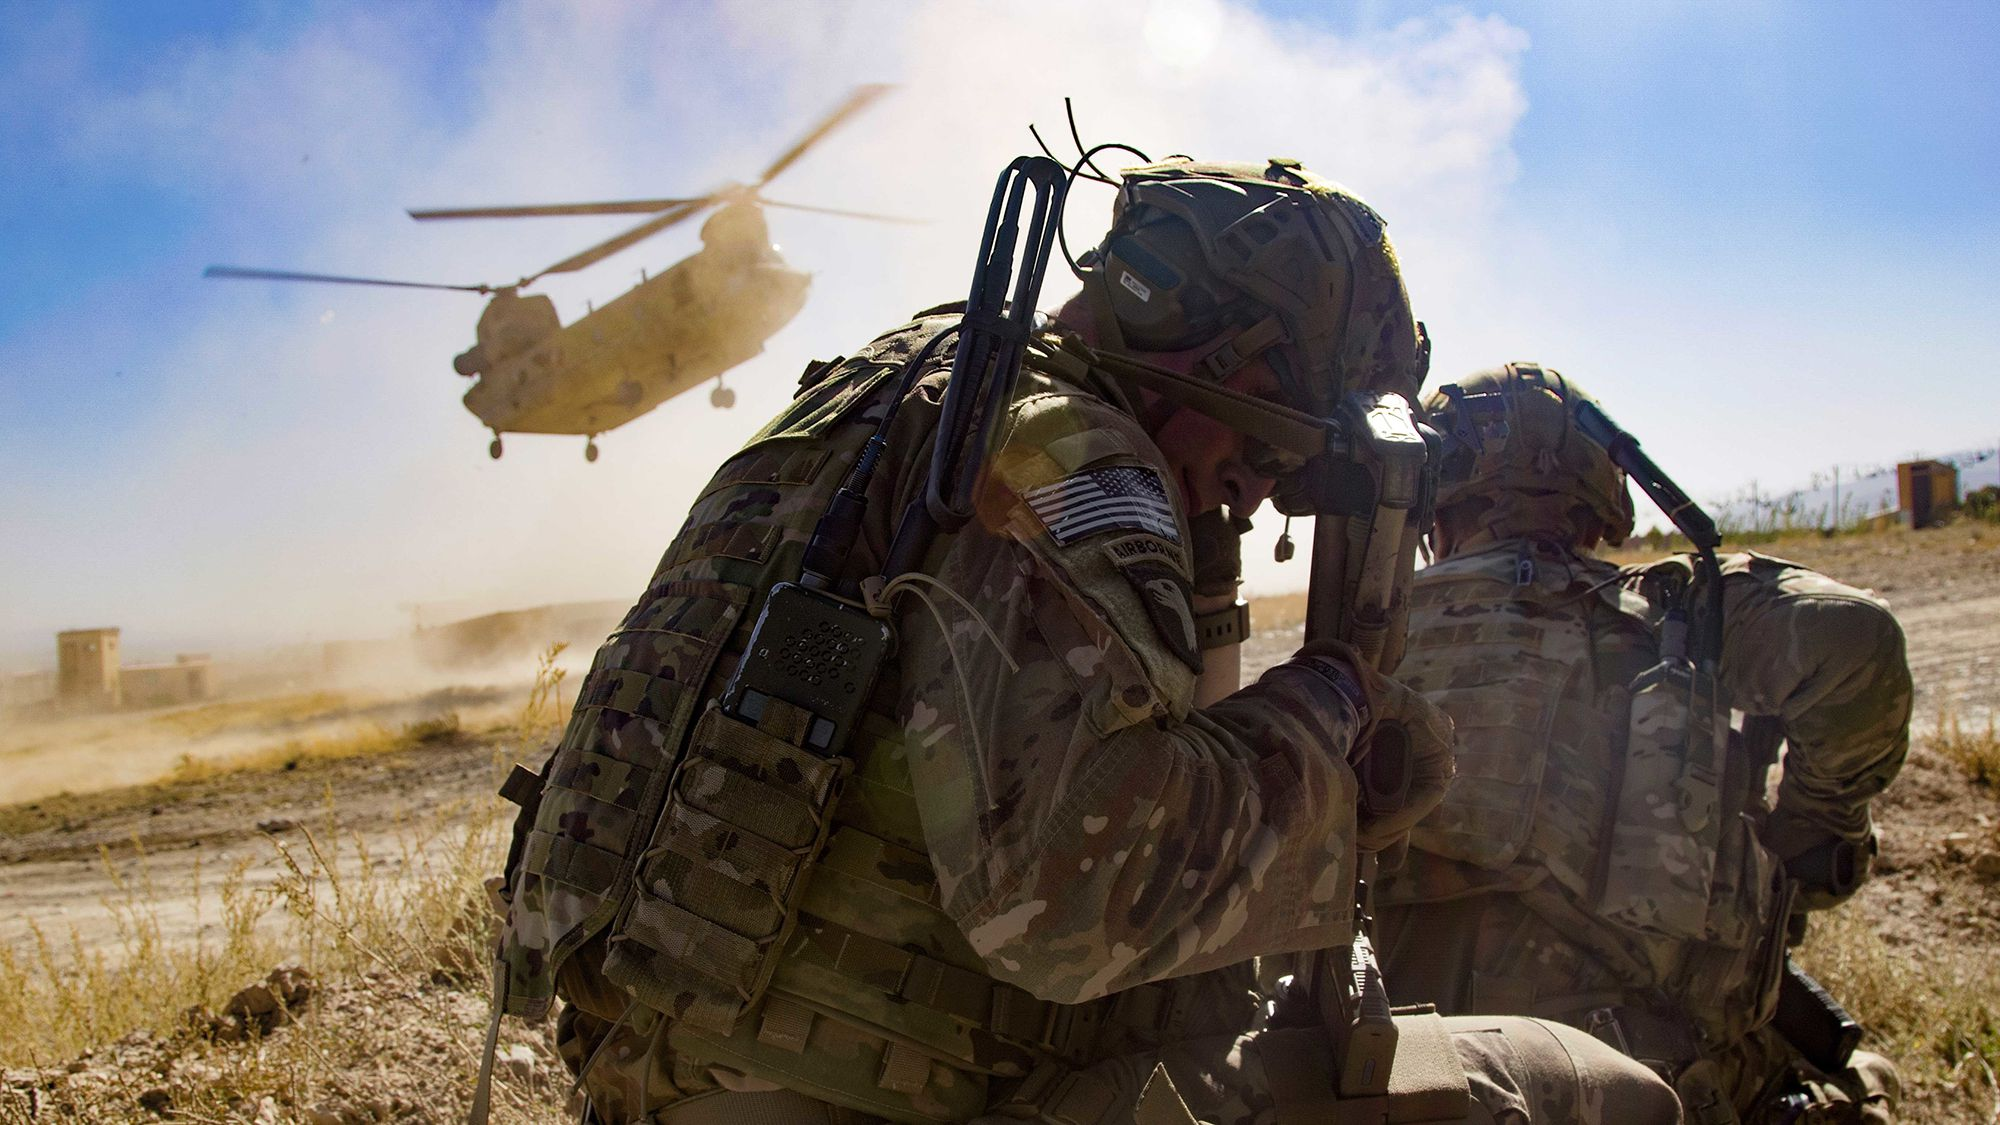 Biden's gamble: Will pulling troops out of Afghanistan revive extremist threat?